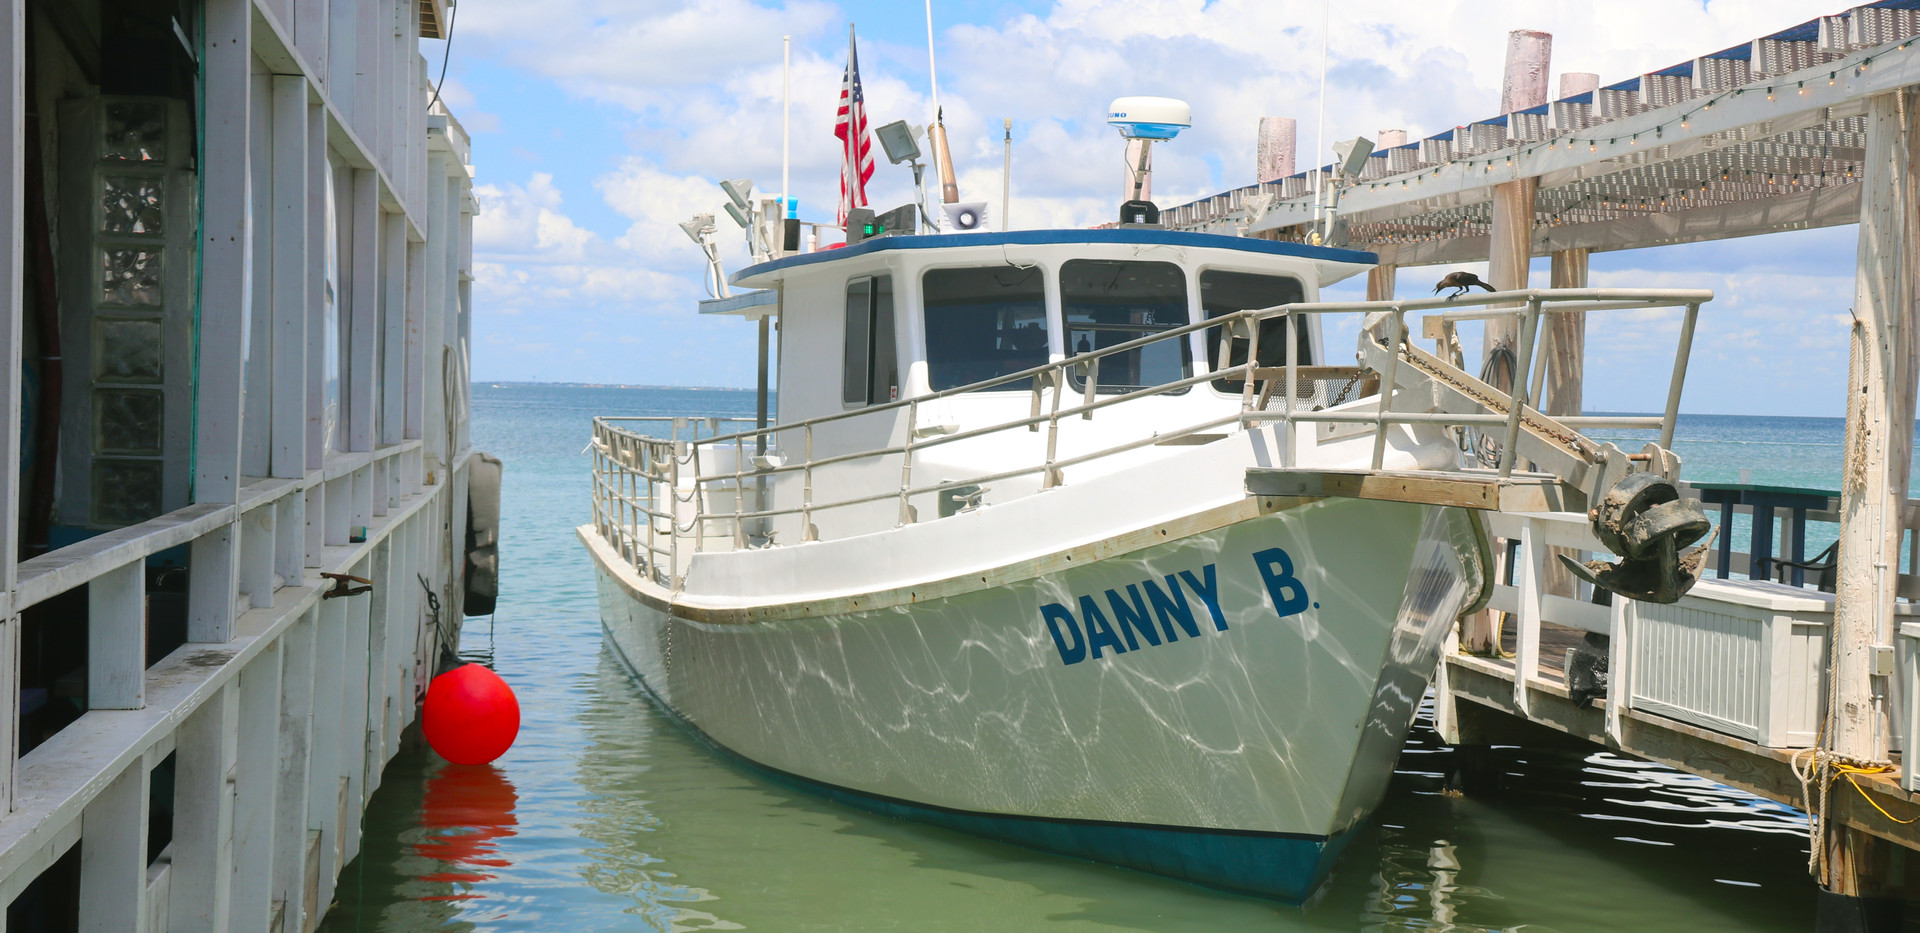 Danny B Fishing Charters and Tours